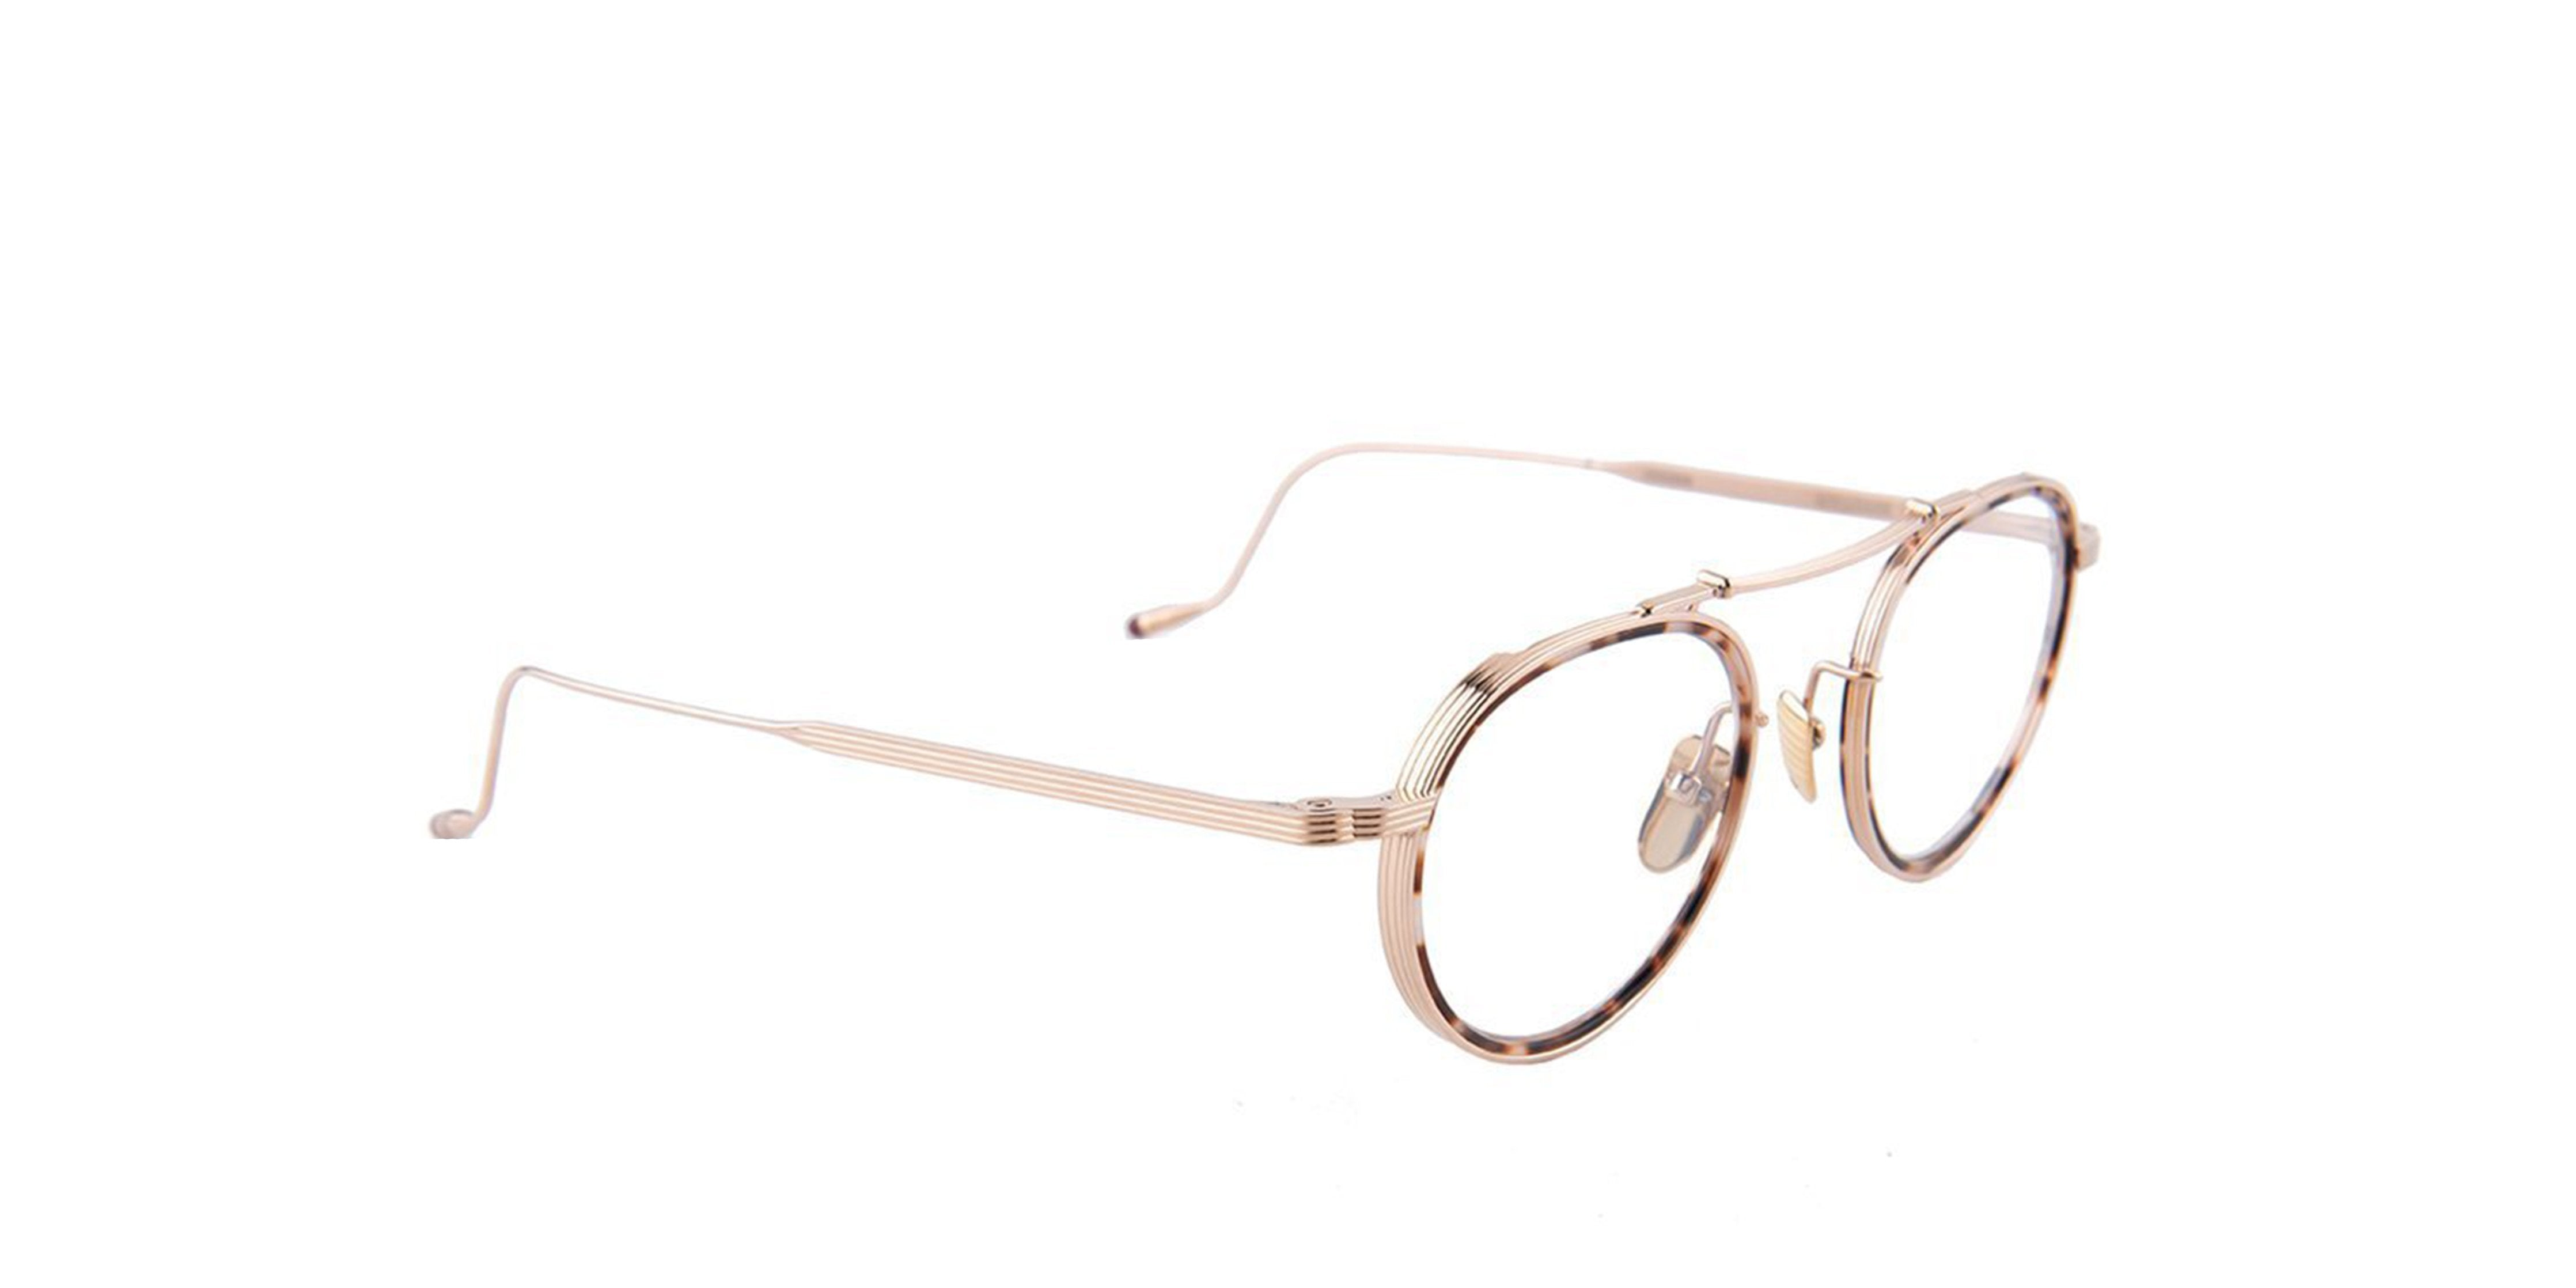 Jacques Marie Mage - Apollinaire Gold/Clear Round Women Eyeglasses - 48mm-Eyeglasses-Designer Eyes